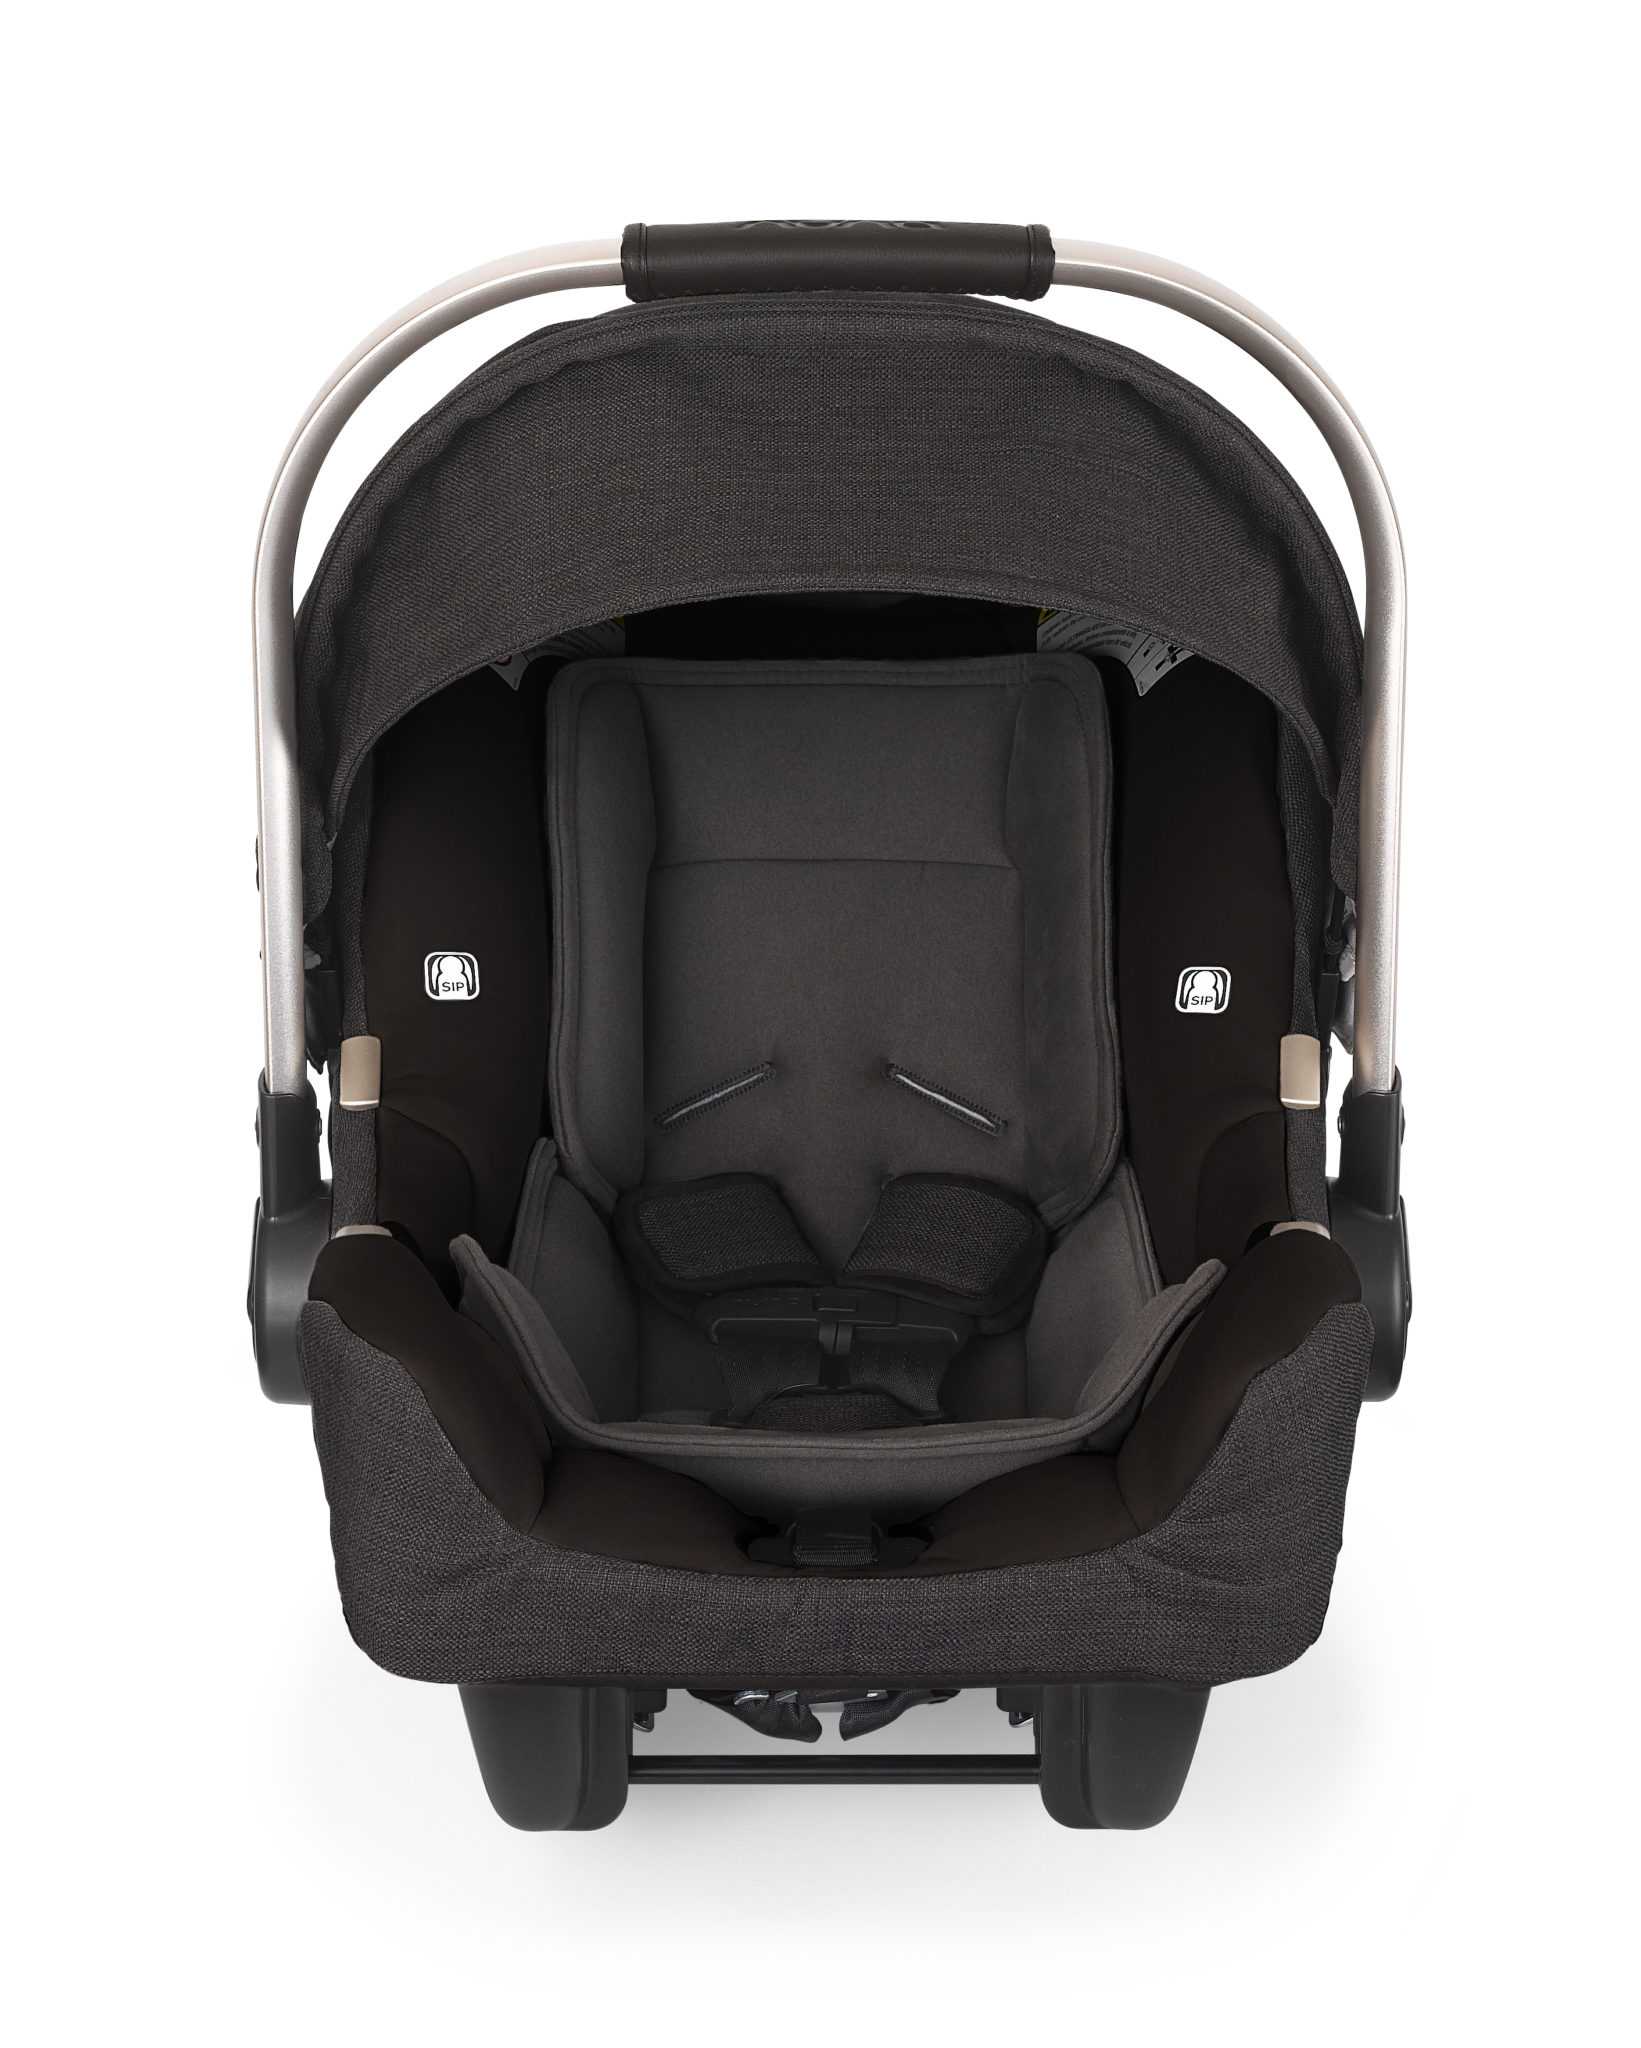 f12ce4a07e4a NUNA PIPA Infant Car Seat (Special Edition) - Suited | Your one-stop ...